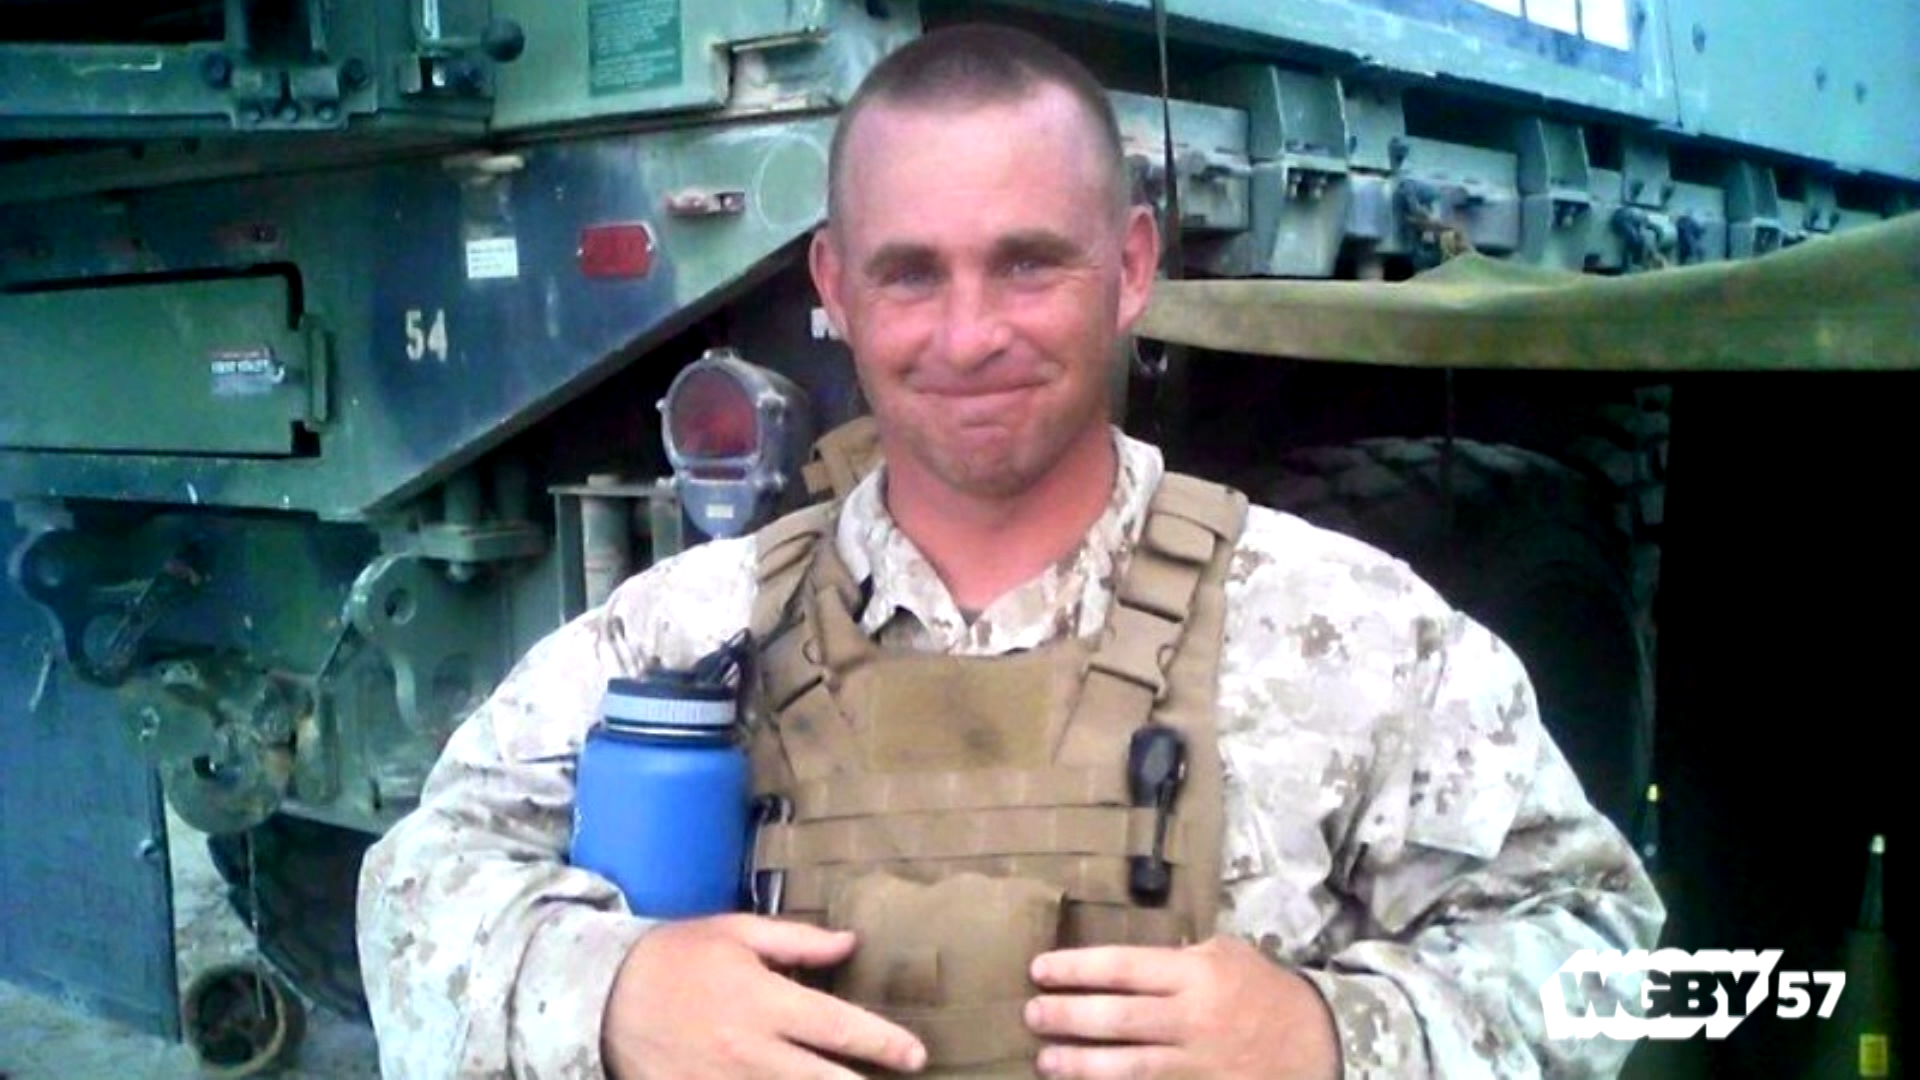 Springfield-native Marine Gunnery Sgt. Thomas J. Sullivan was a victim of the 2015 domestic terrorist attach in Chattanooga, TN. To honor his memory, Sullivan's family is working with Habitat for Humanity to build Tommy's House, a home in Springfield, MA that will be donated to a military family in need.